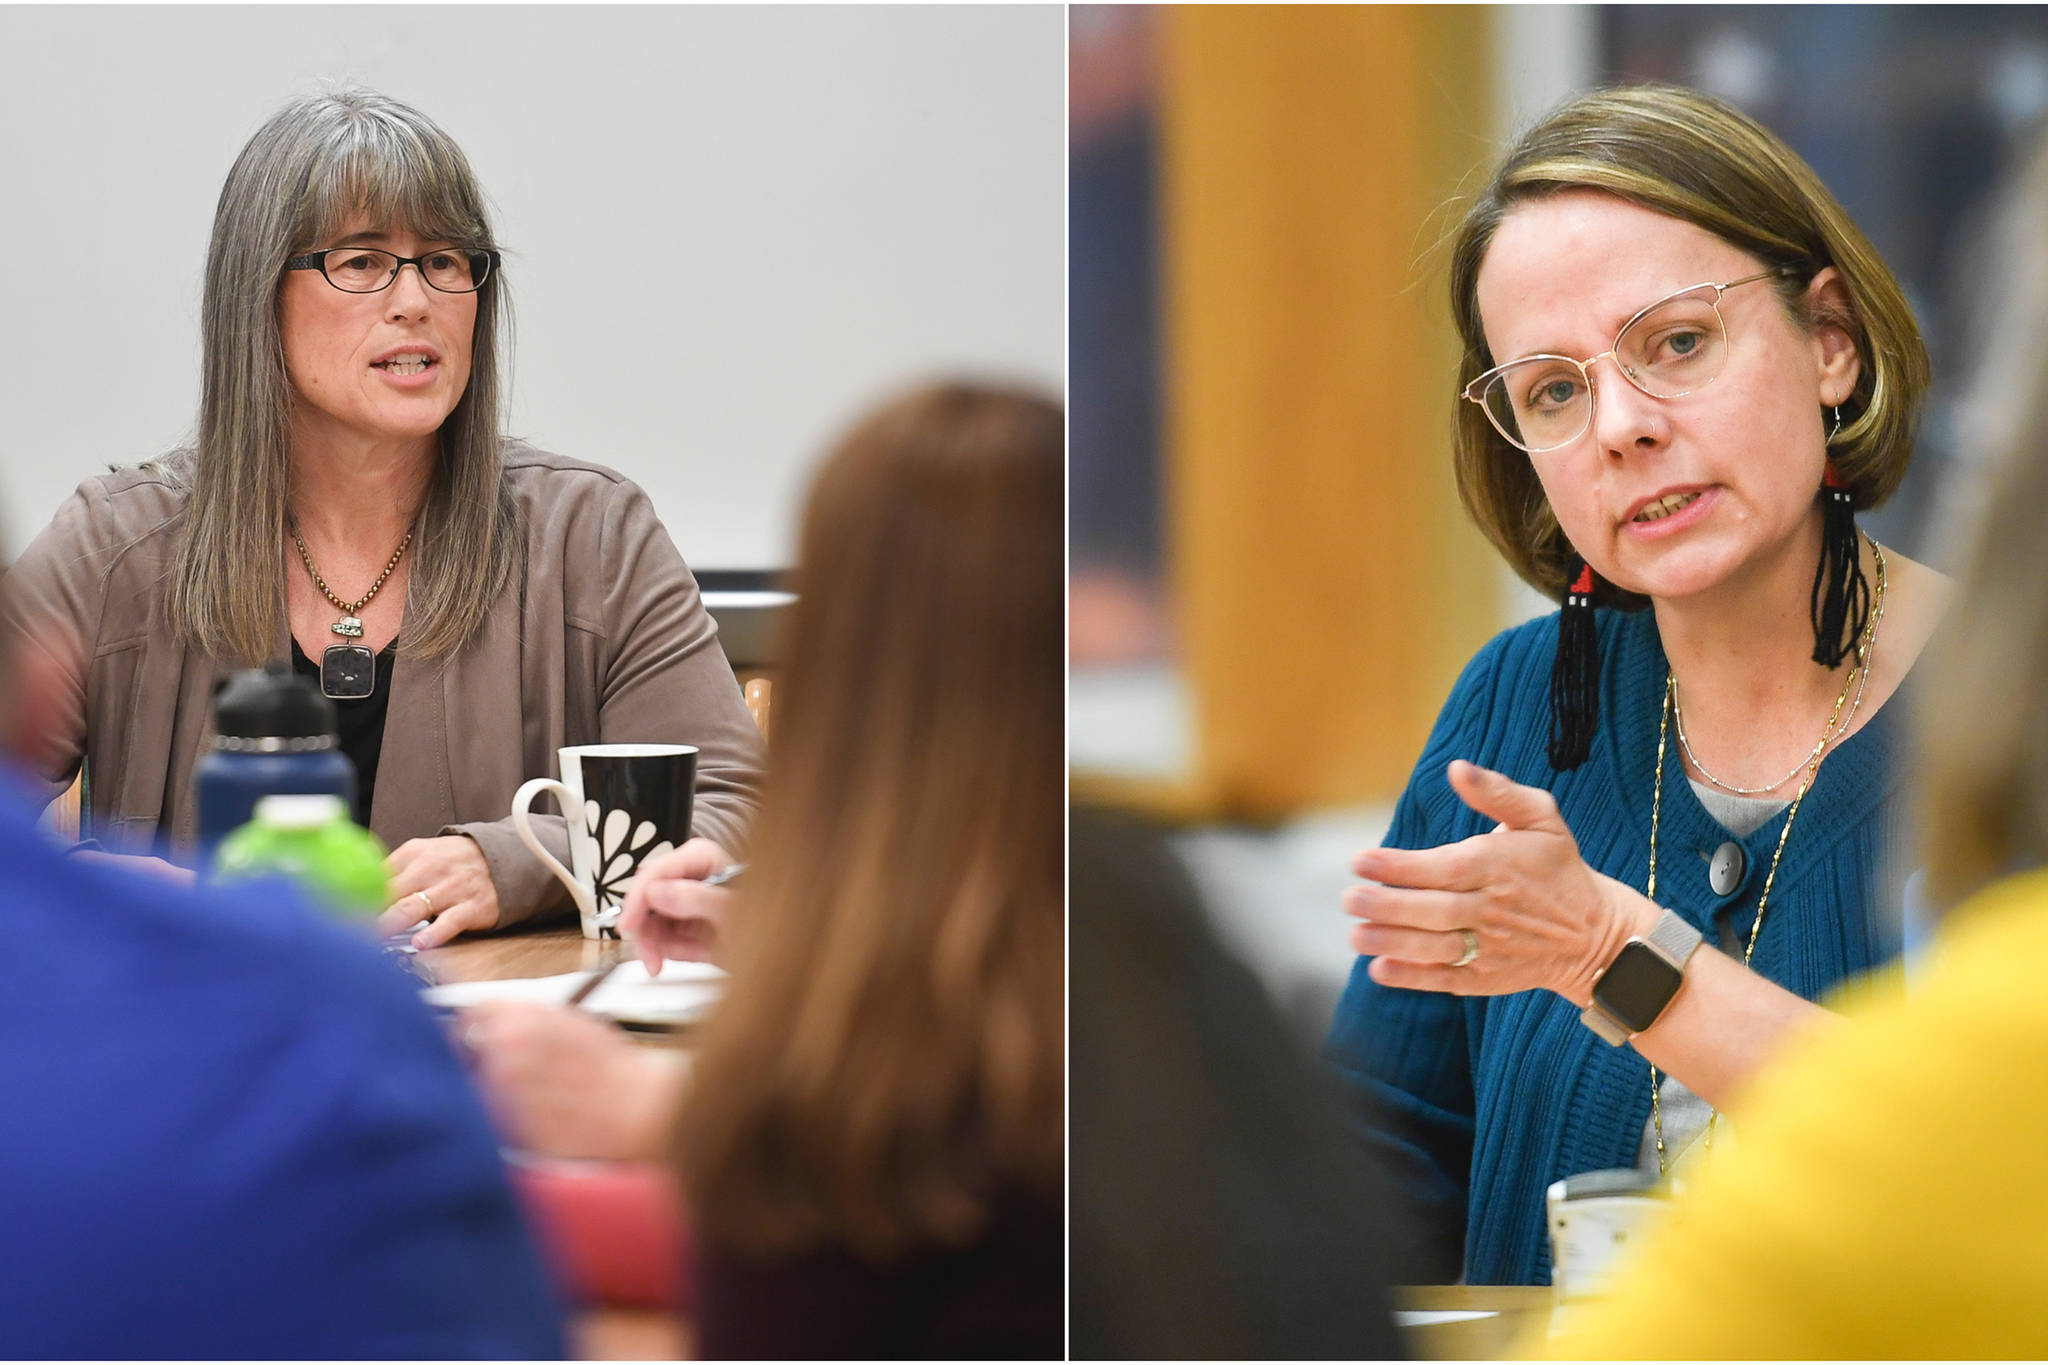 Molly Box is the new permanent principal of Harborview Elementary School, and Elizabeth Pisel-Davis is the new permanent principal of Riverbend Elementary School. Both previously served as interim principal at their respective schools. (Michael Penn | Juneau Empire)